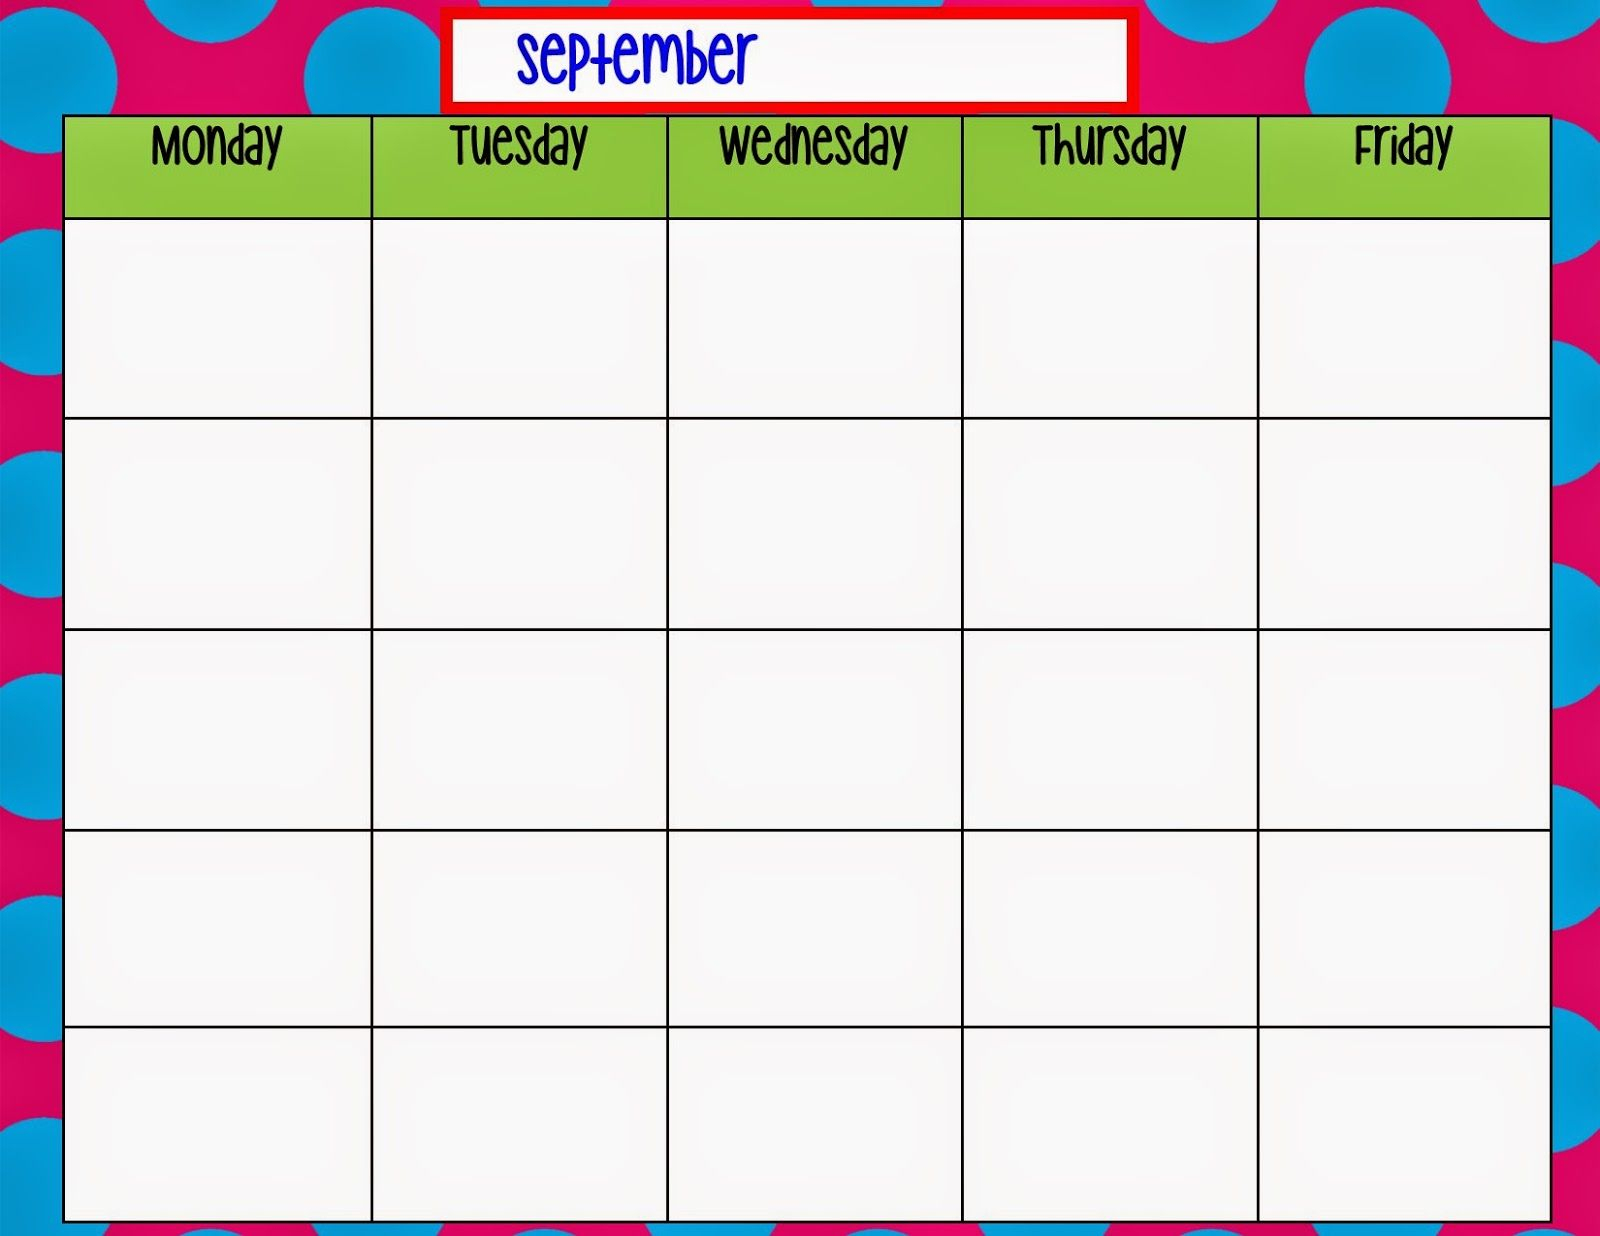 Monday Through Friday Calendar Template | Preschool | Weekly throughout Monday Through Friday Schedule Template